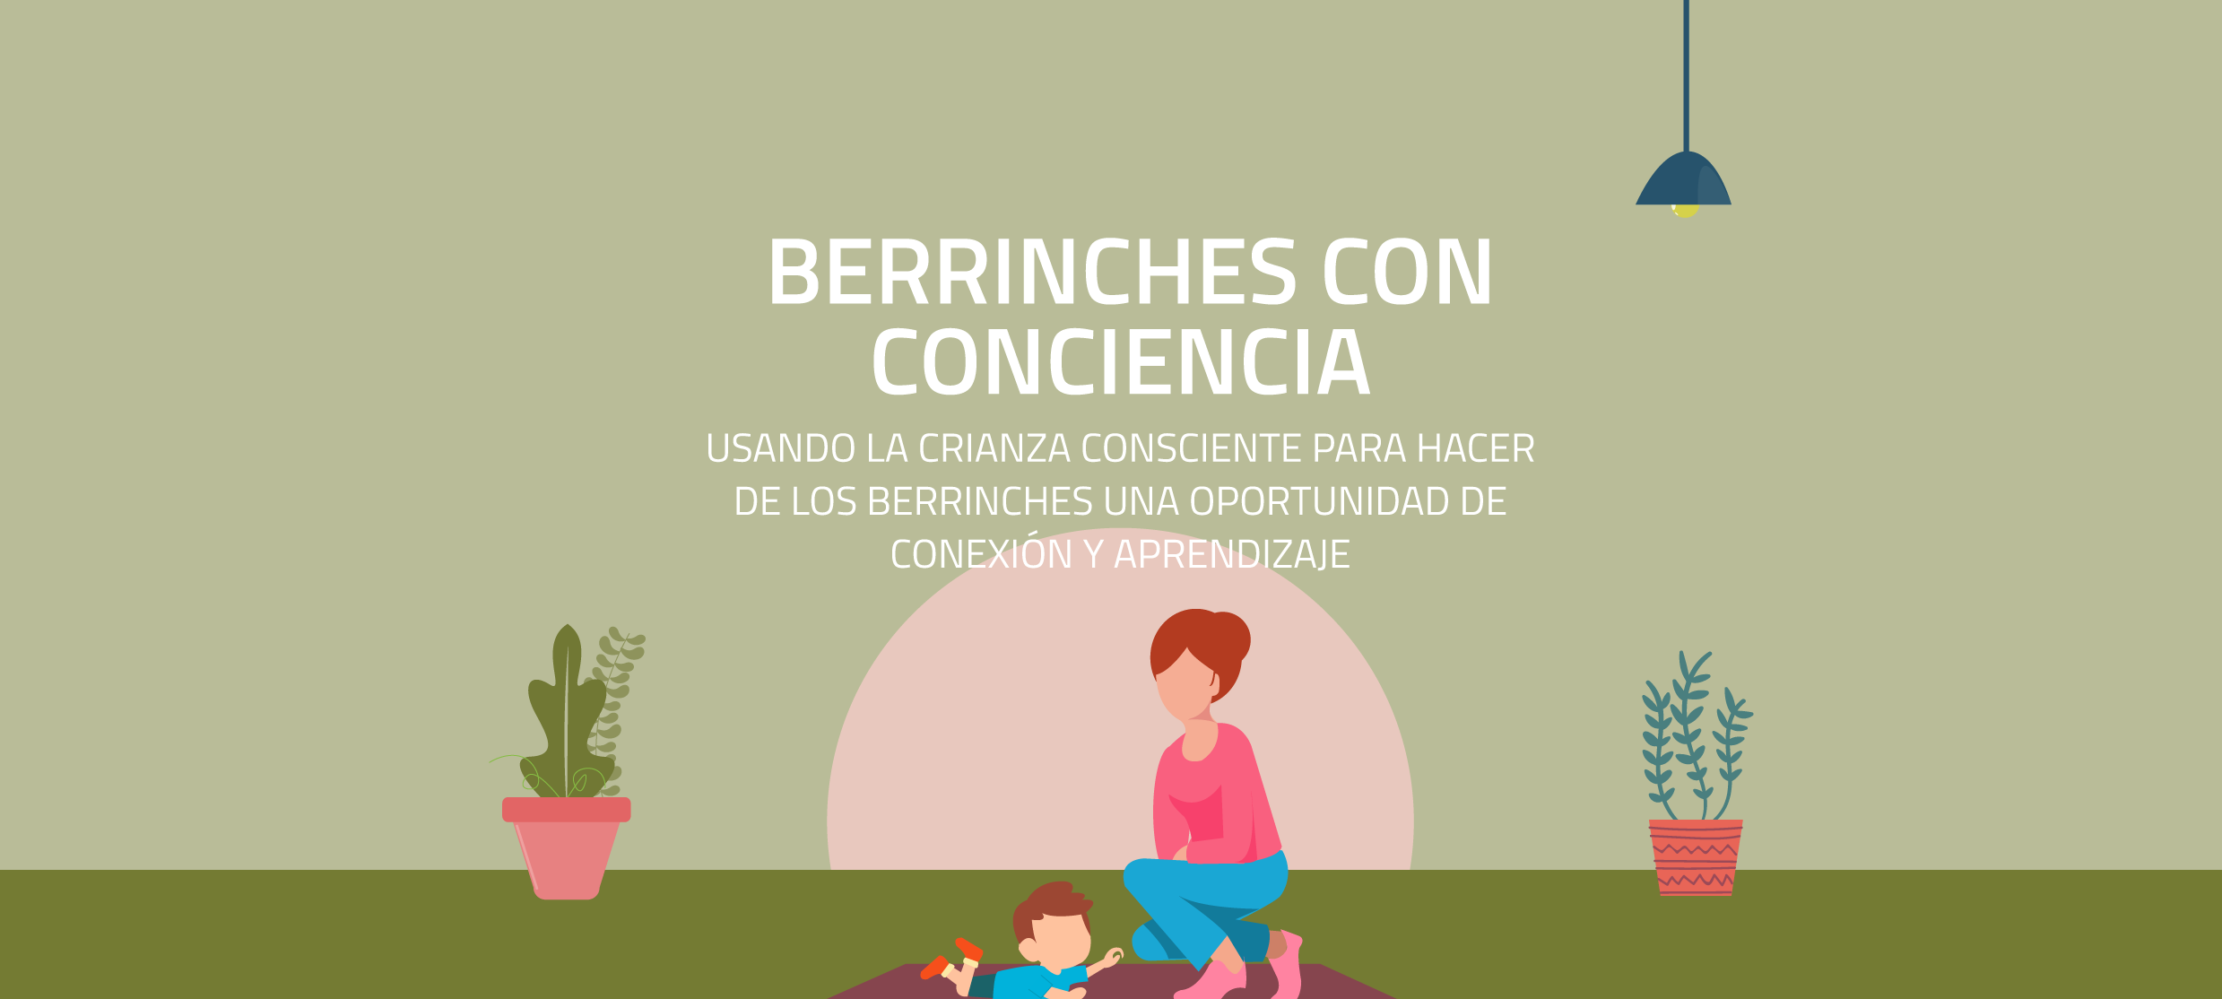 Berrinches con consciencia